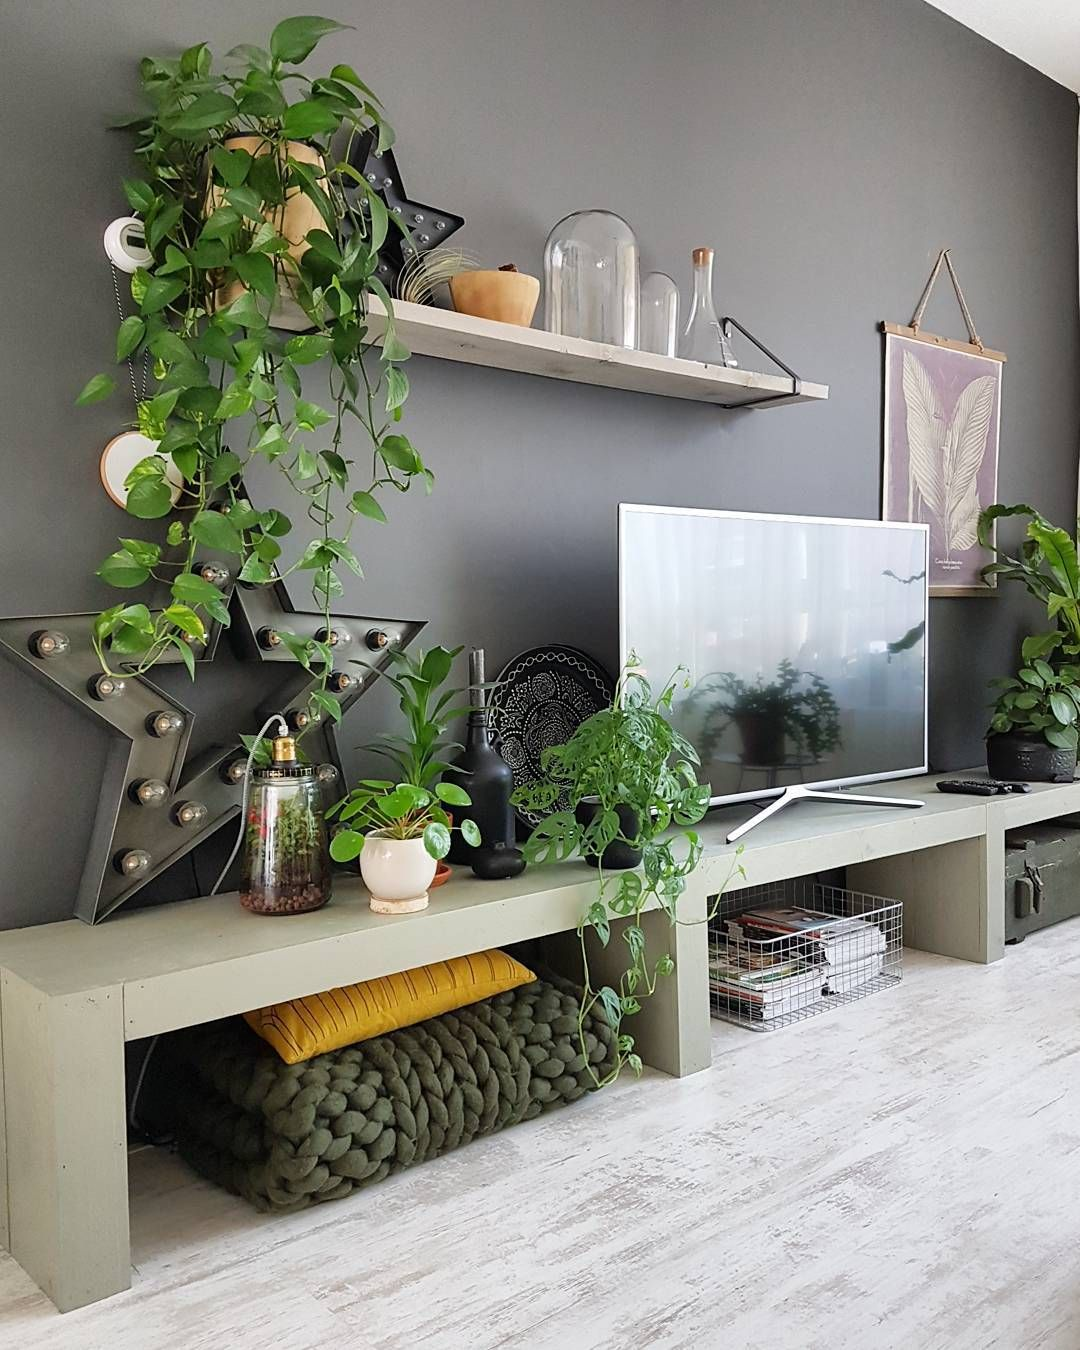 Tv Unit In Living Room: TV Cabinet And Indoor Plants